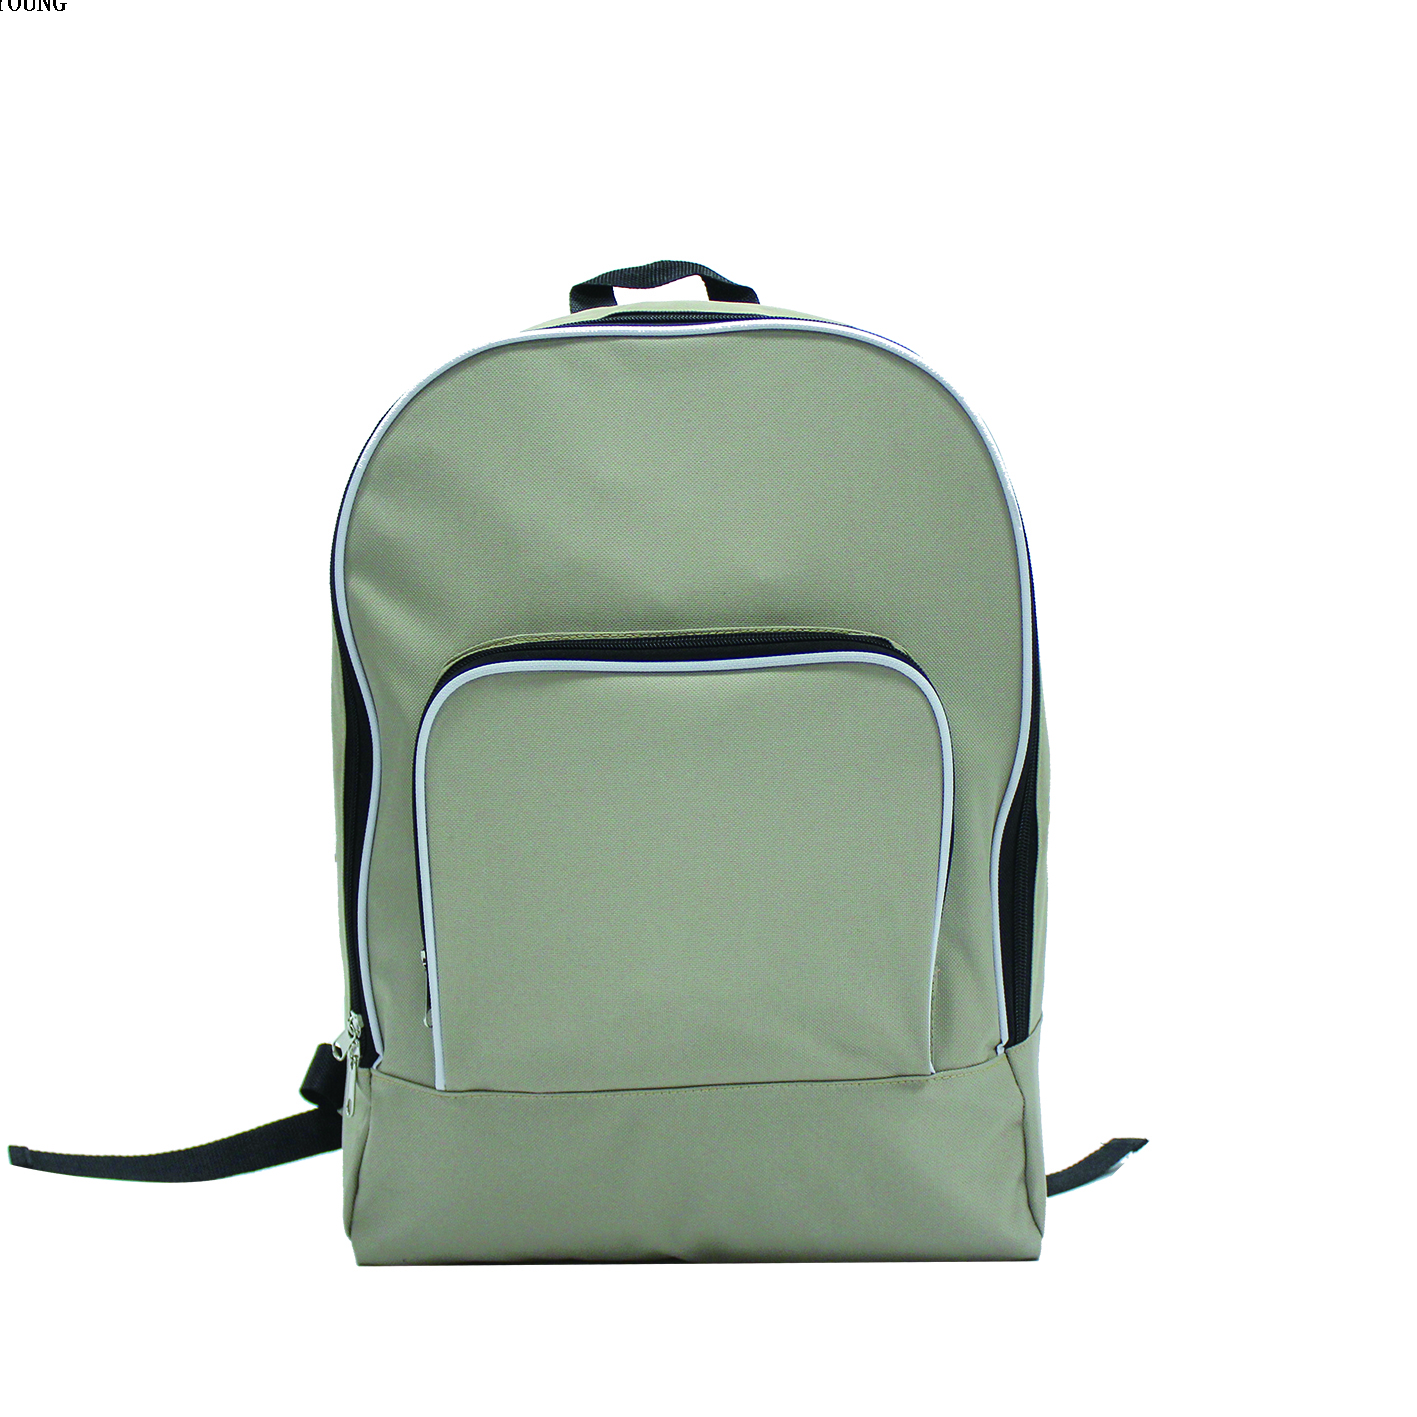 Light Large Capacity Foldable Promotional Backpack with Piping HY-A130